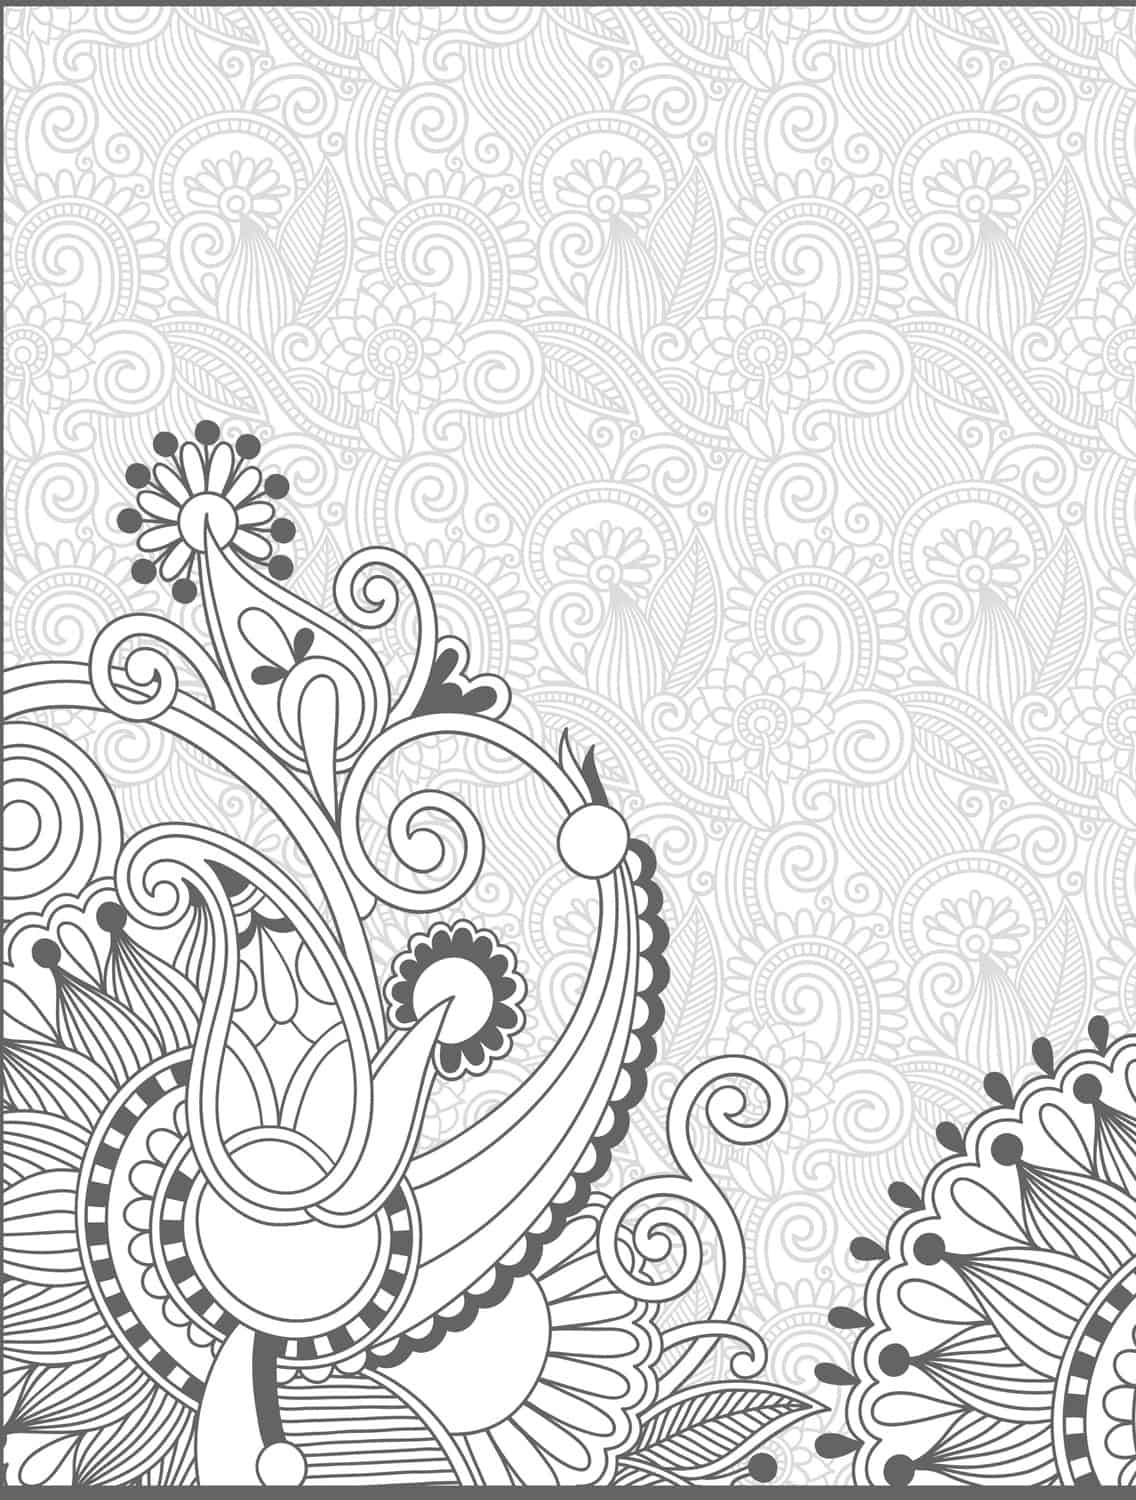 15 Crazy Busy Coloring Pages For Adults Page 16 Of 16